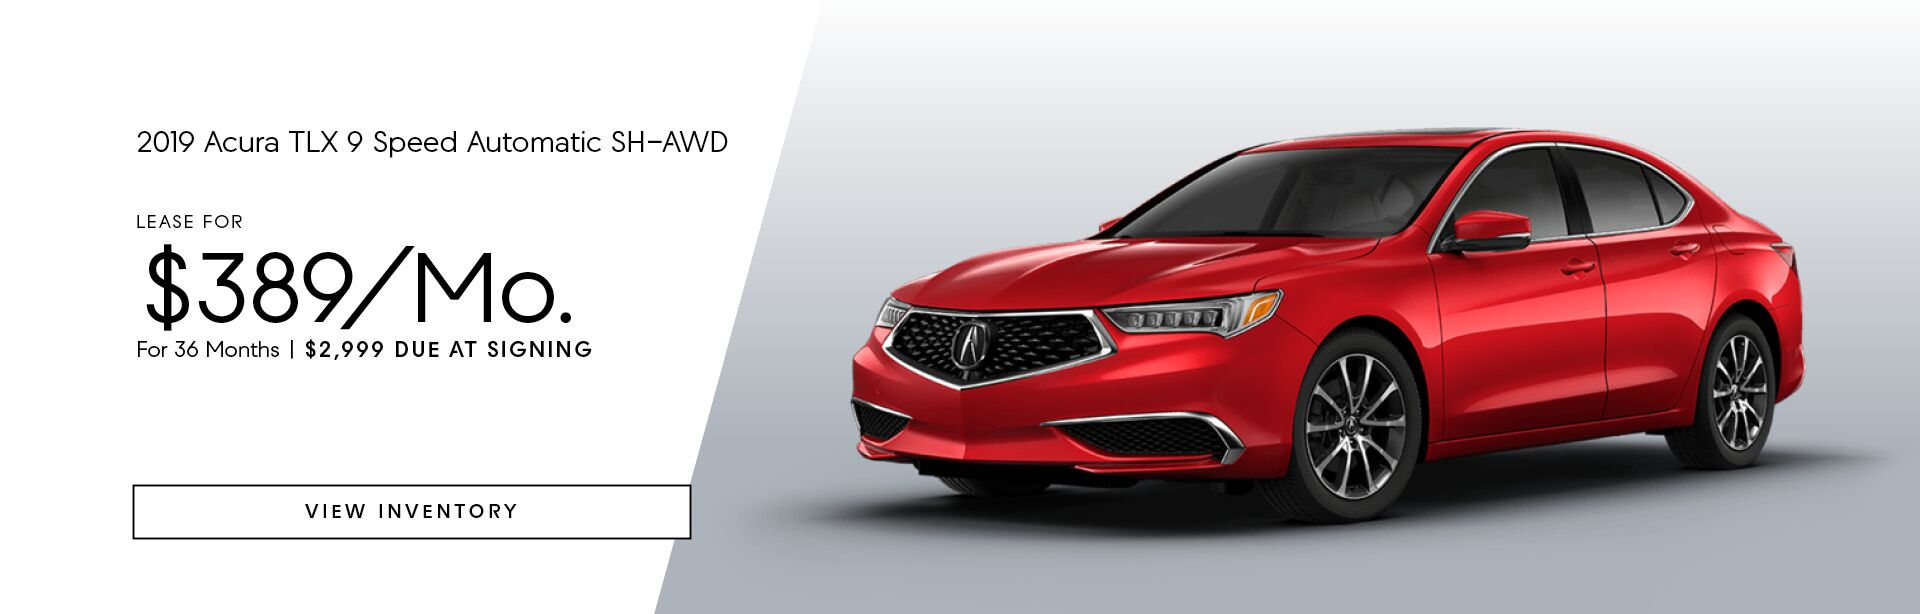 2019 Acura TLX 9 Speed Automatic SH-AWD